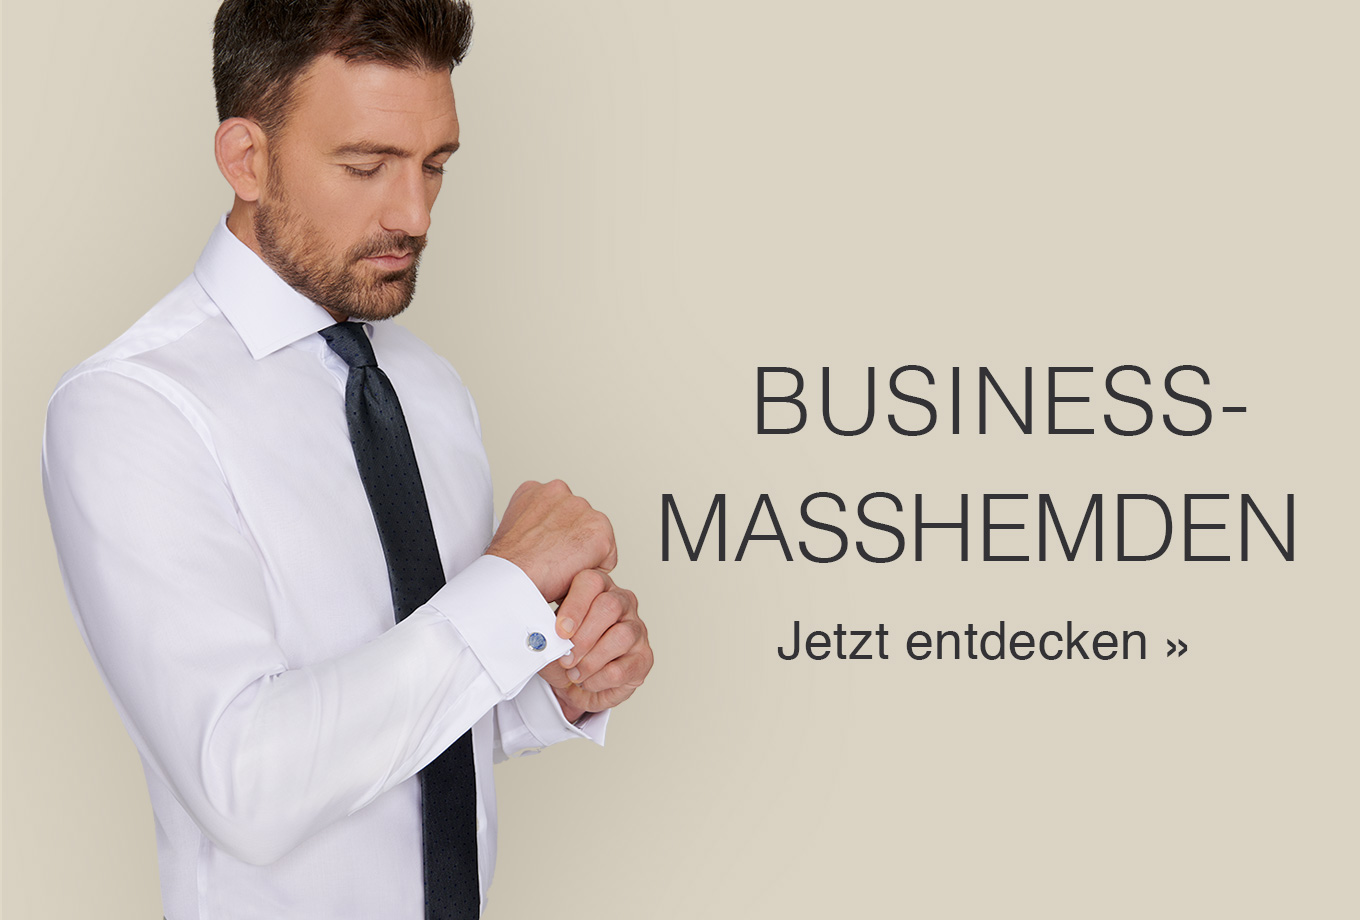 Business-Maßhemden